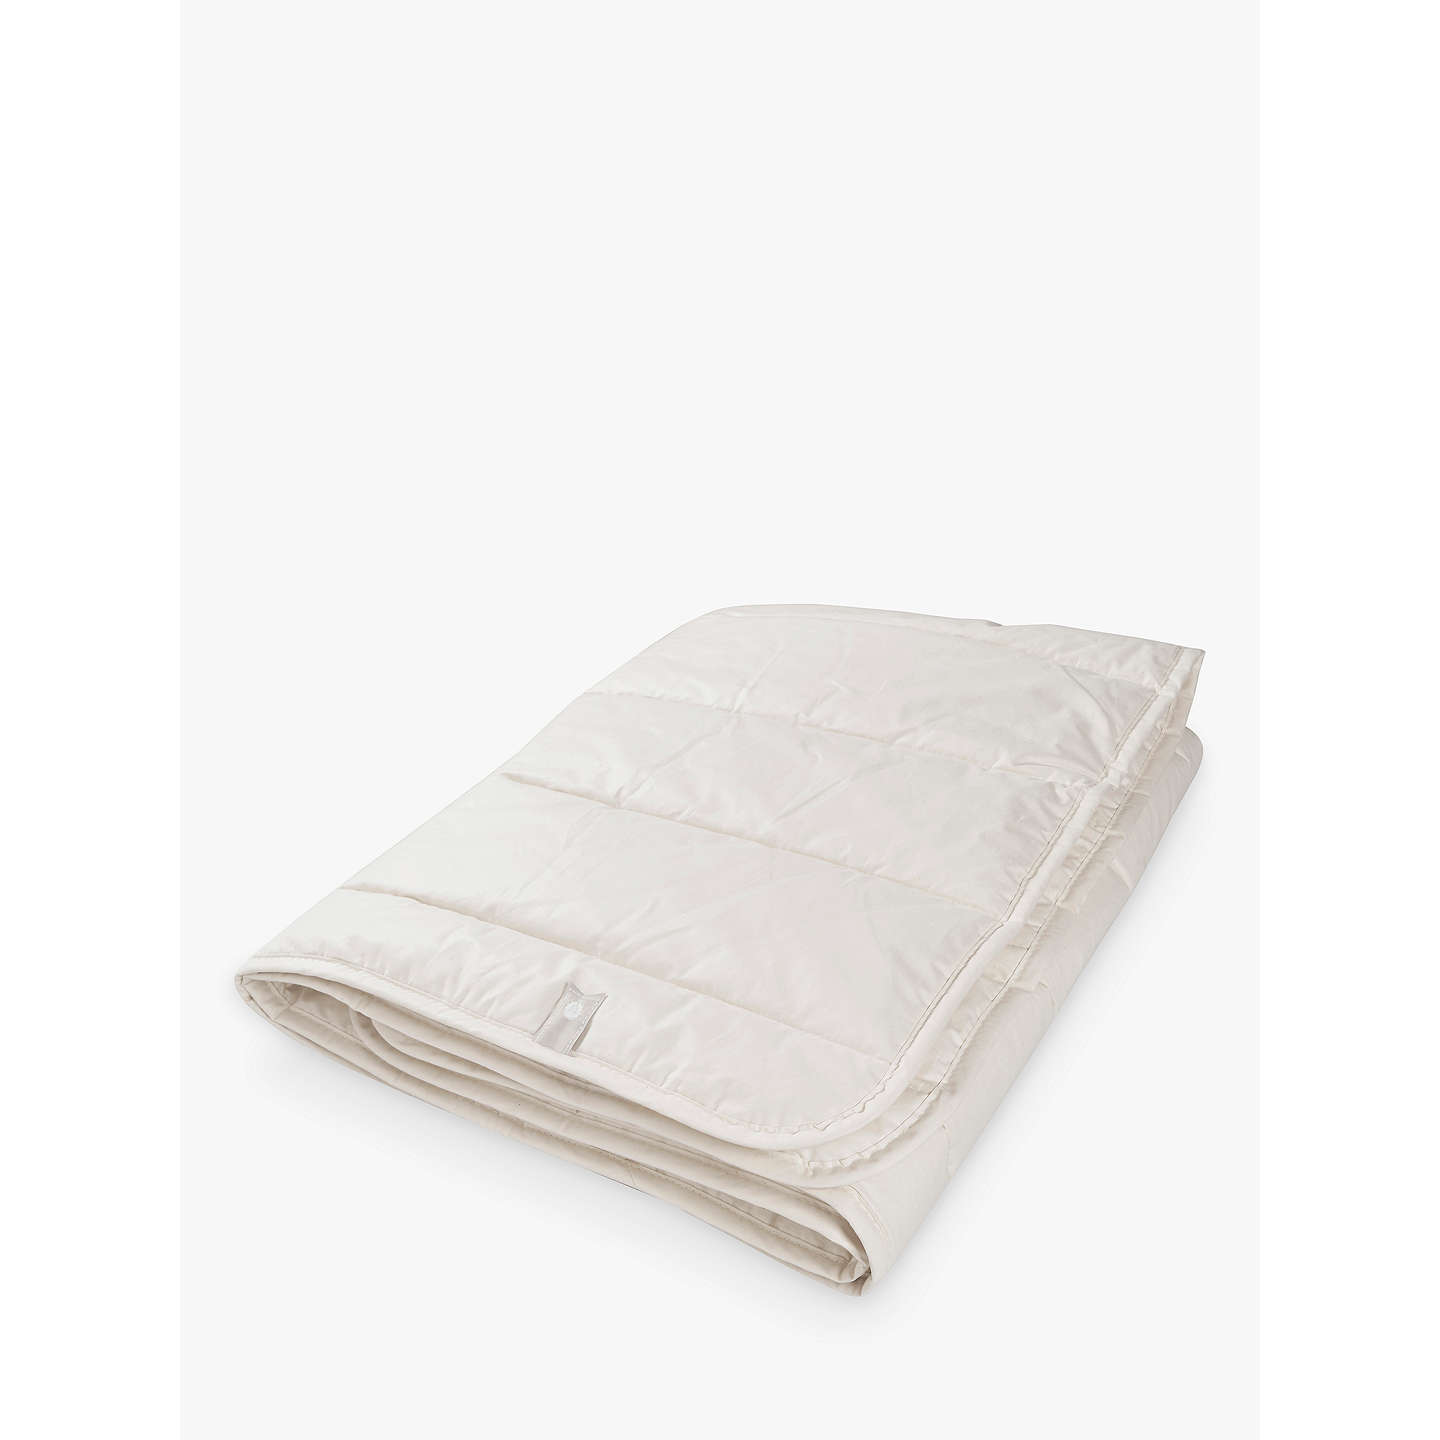 station the flinen mattress my natural from myers bed sleep curvy wool cover deluxe divan orthohealth otto